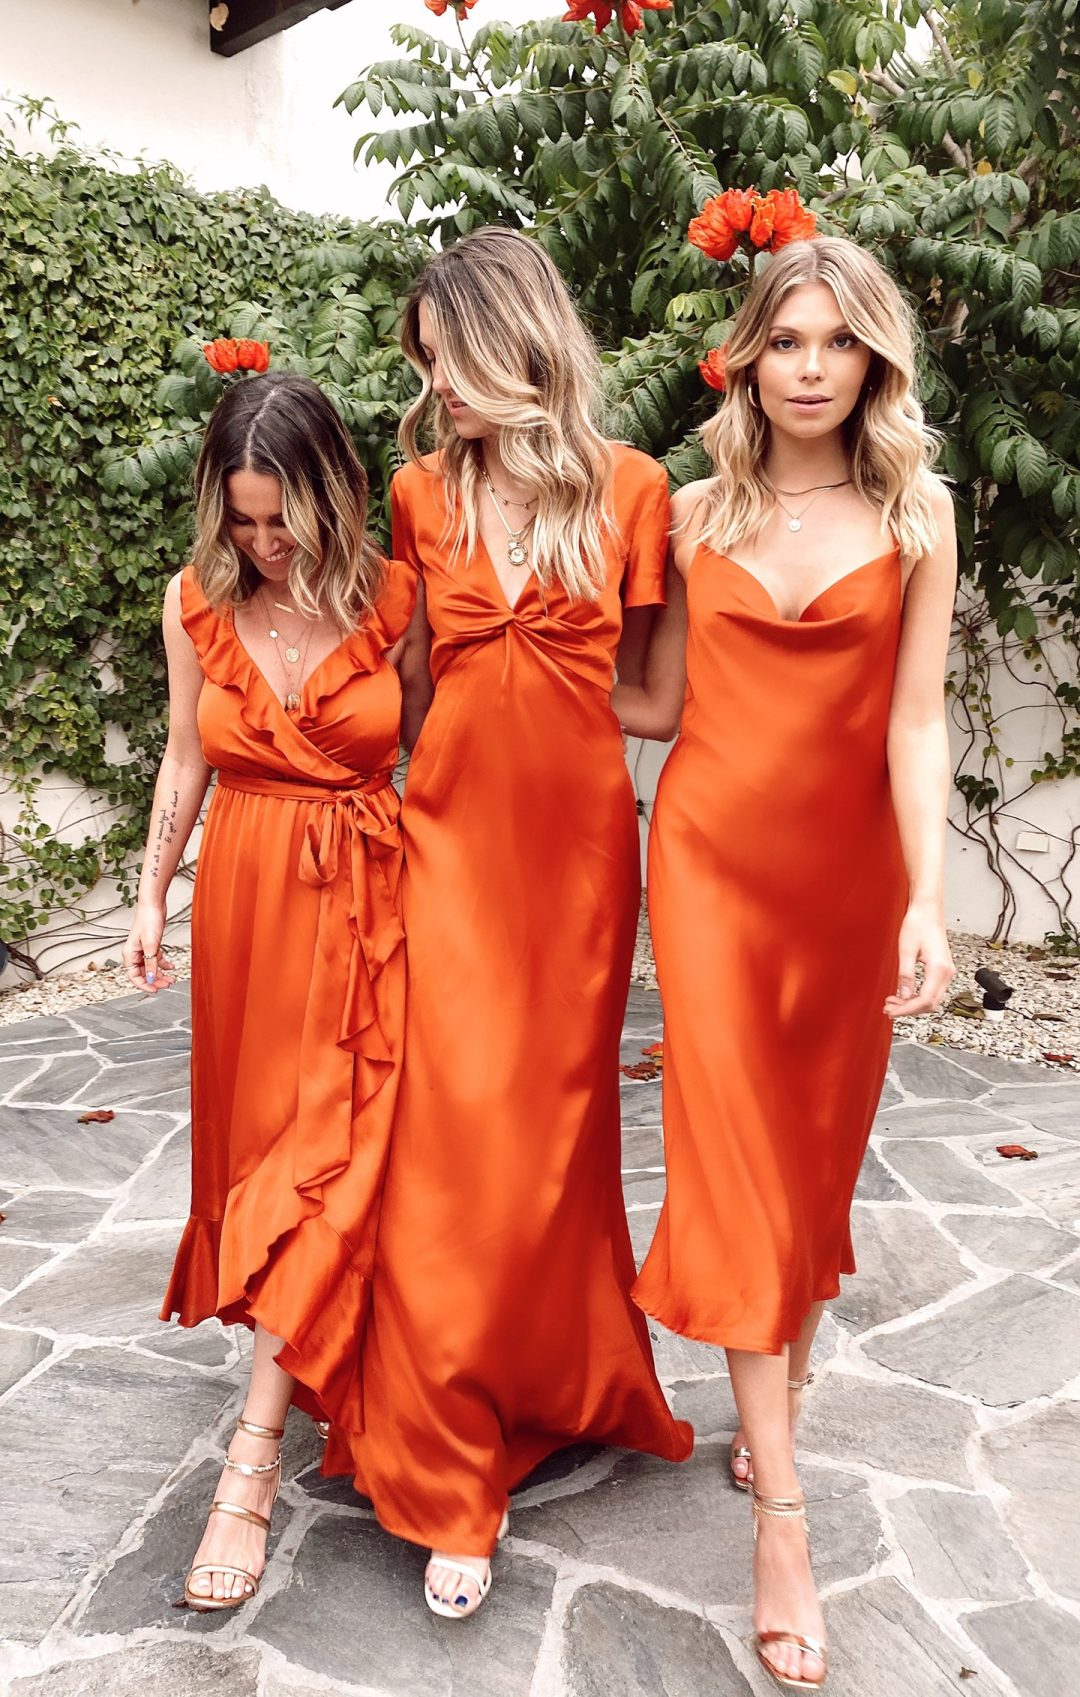 Mismatched orange and red bridesmaid dresses